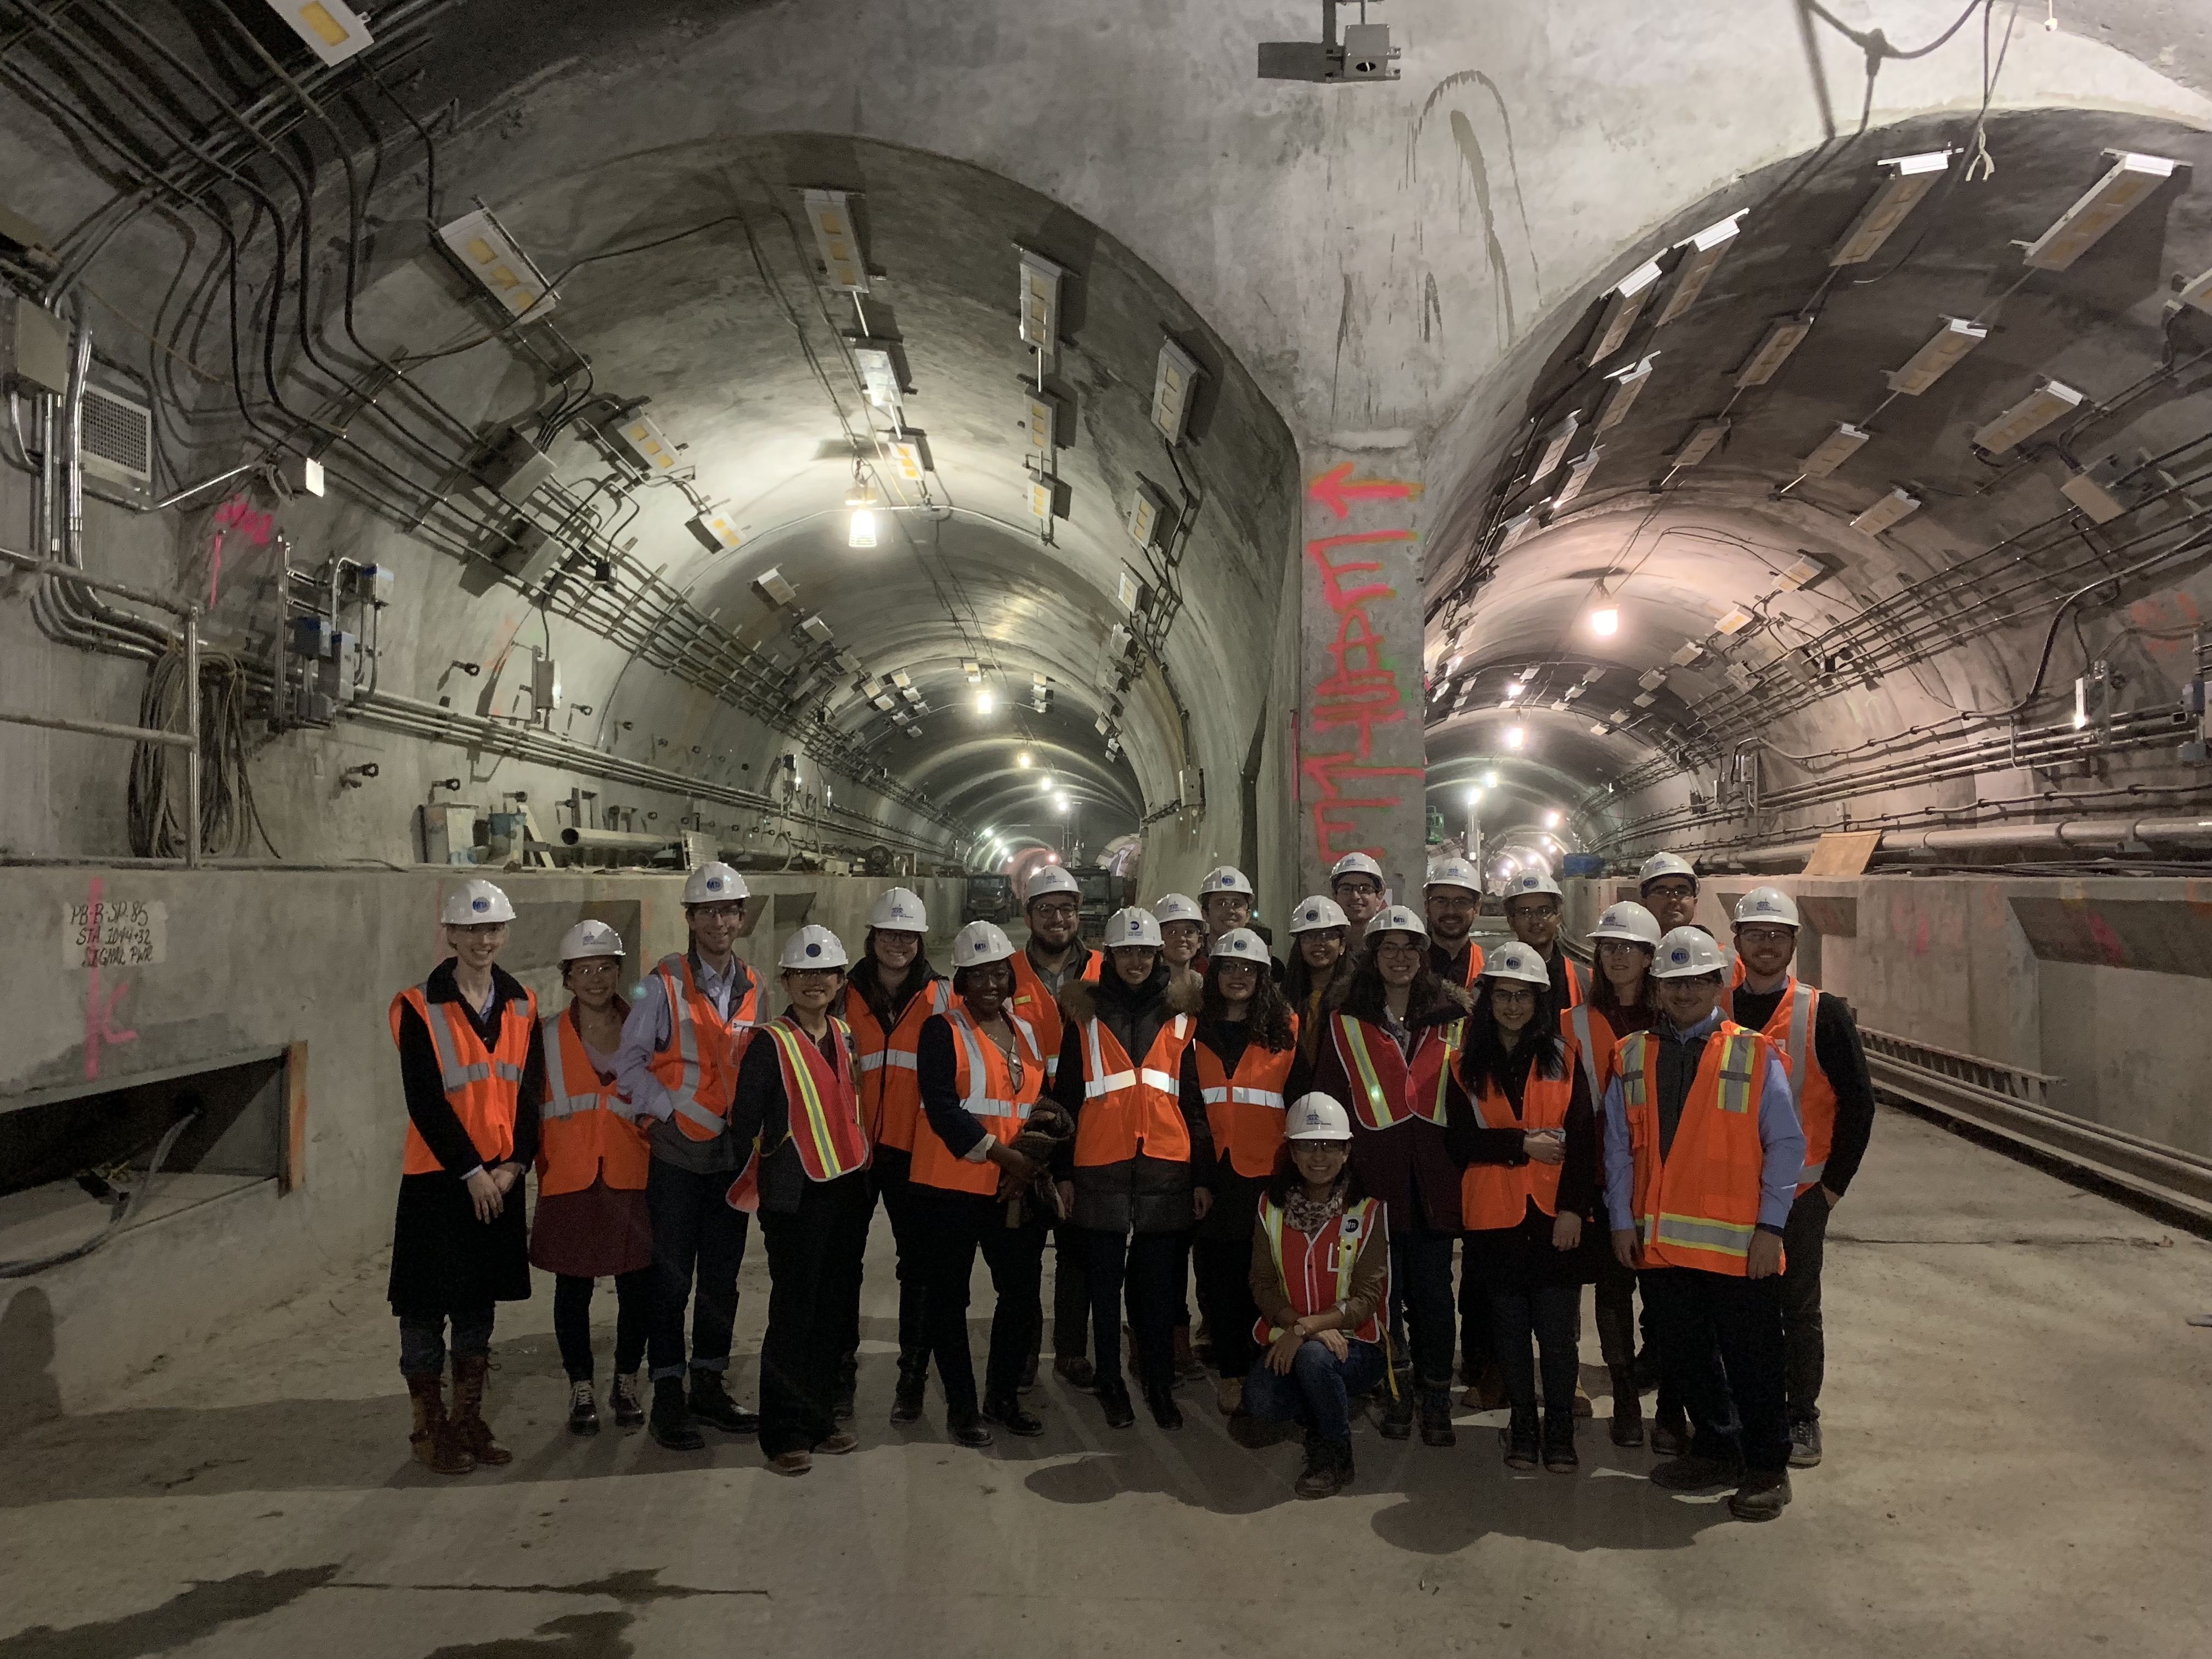 East Side Access Tour